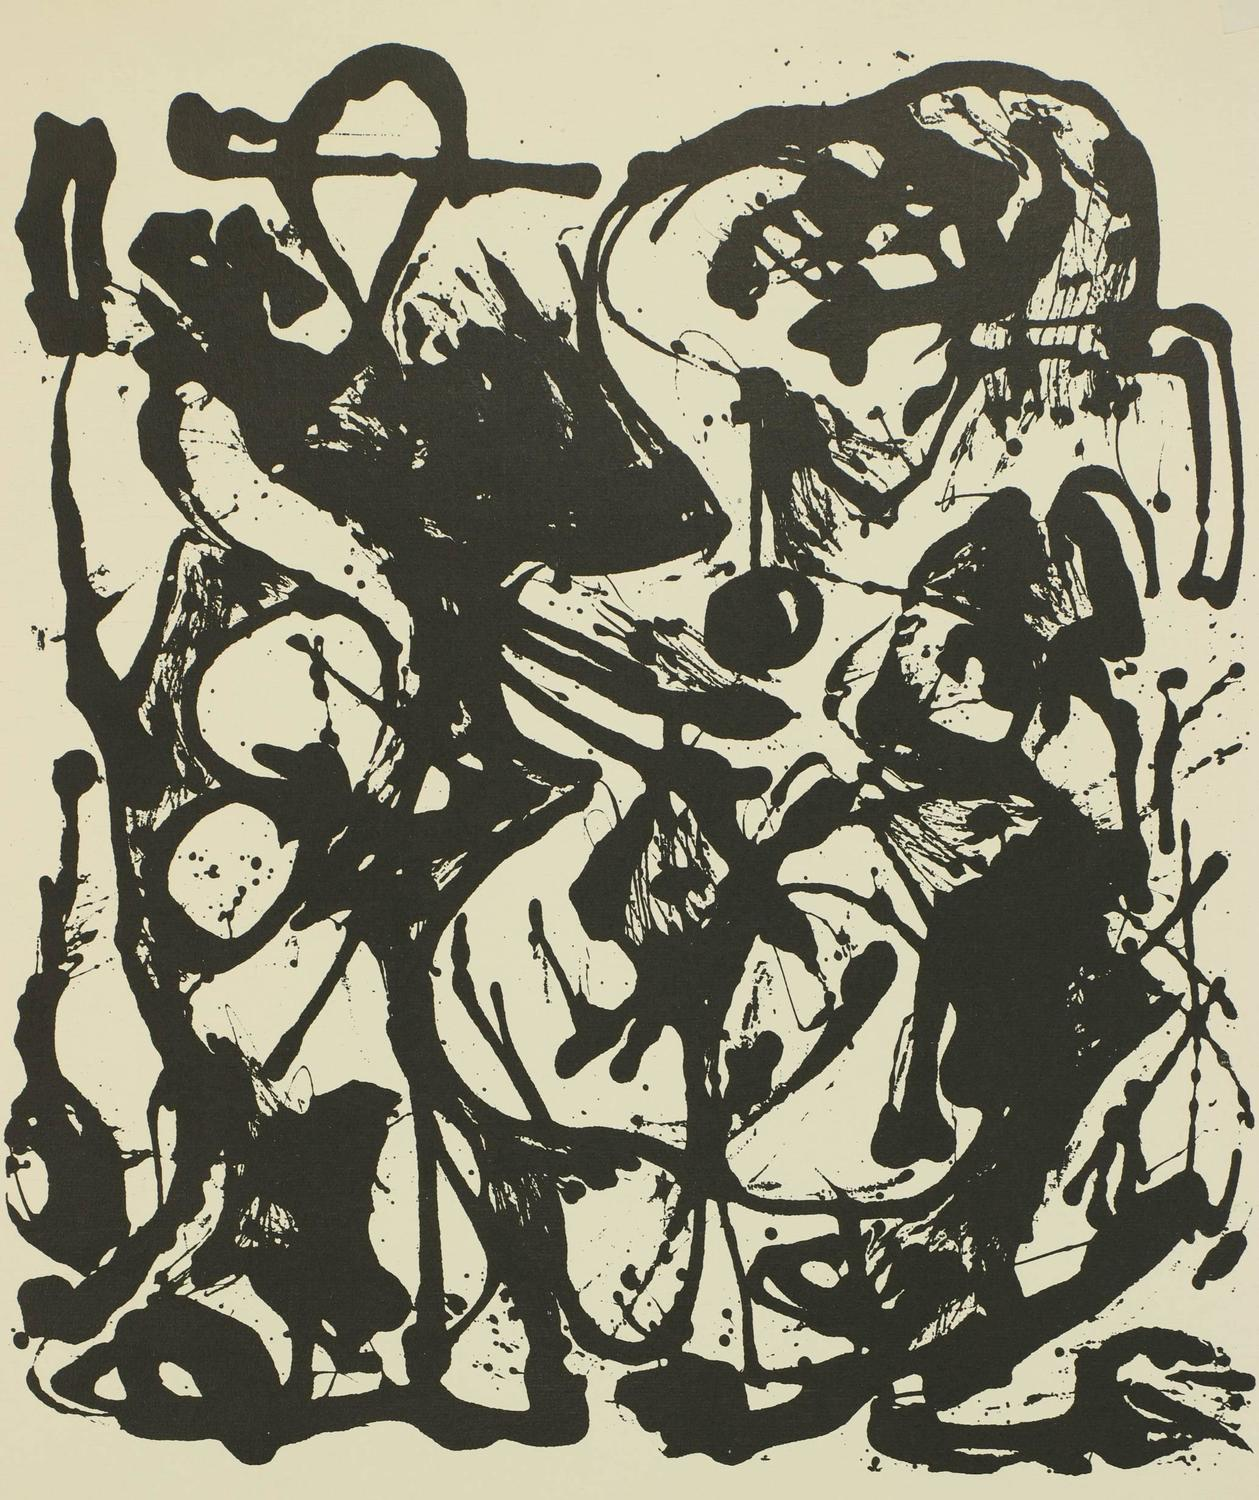 Water Essay Jackson Pollock  Select American Painters Of The Fifties Print For Sale  At Stdibs Reflection Paper Example Essays also Argumentative Essay Thesis Examples Jackson Pollock  Select American Painters Of The Fifties Print For  Essays On A Good Man Is Hard To Find